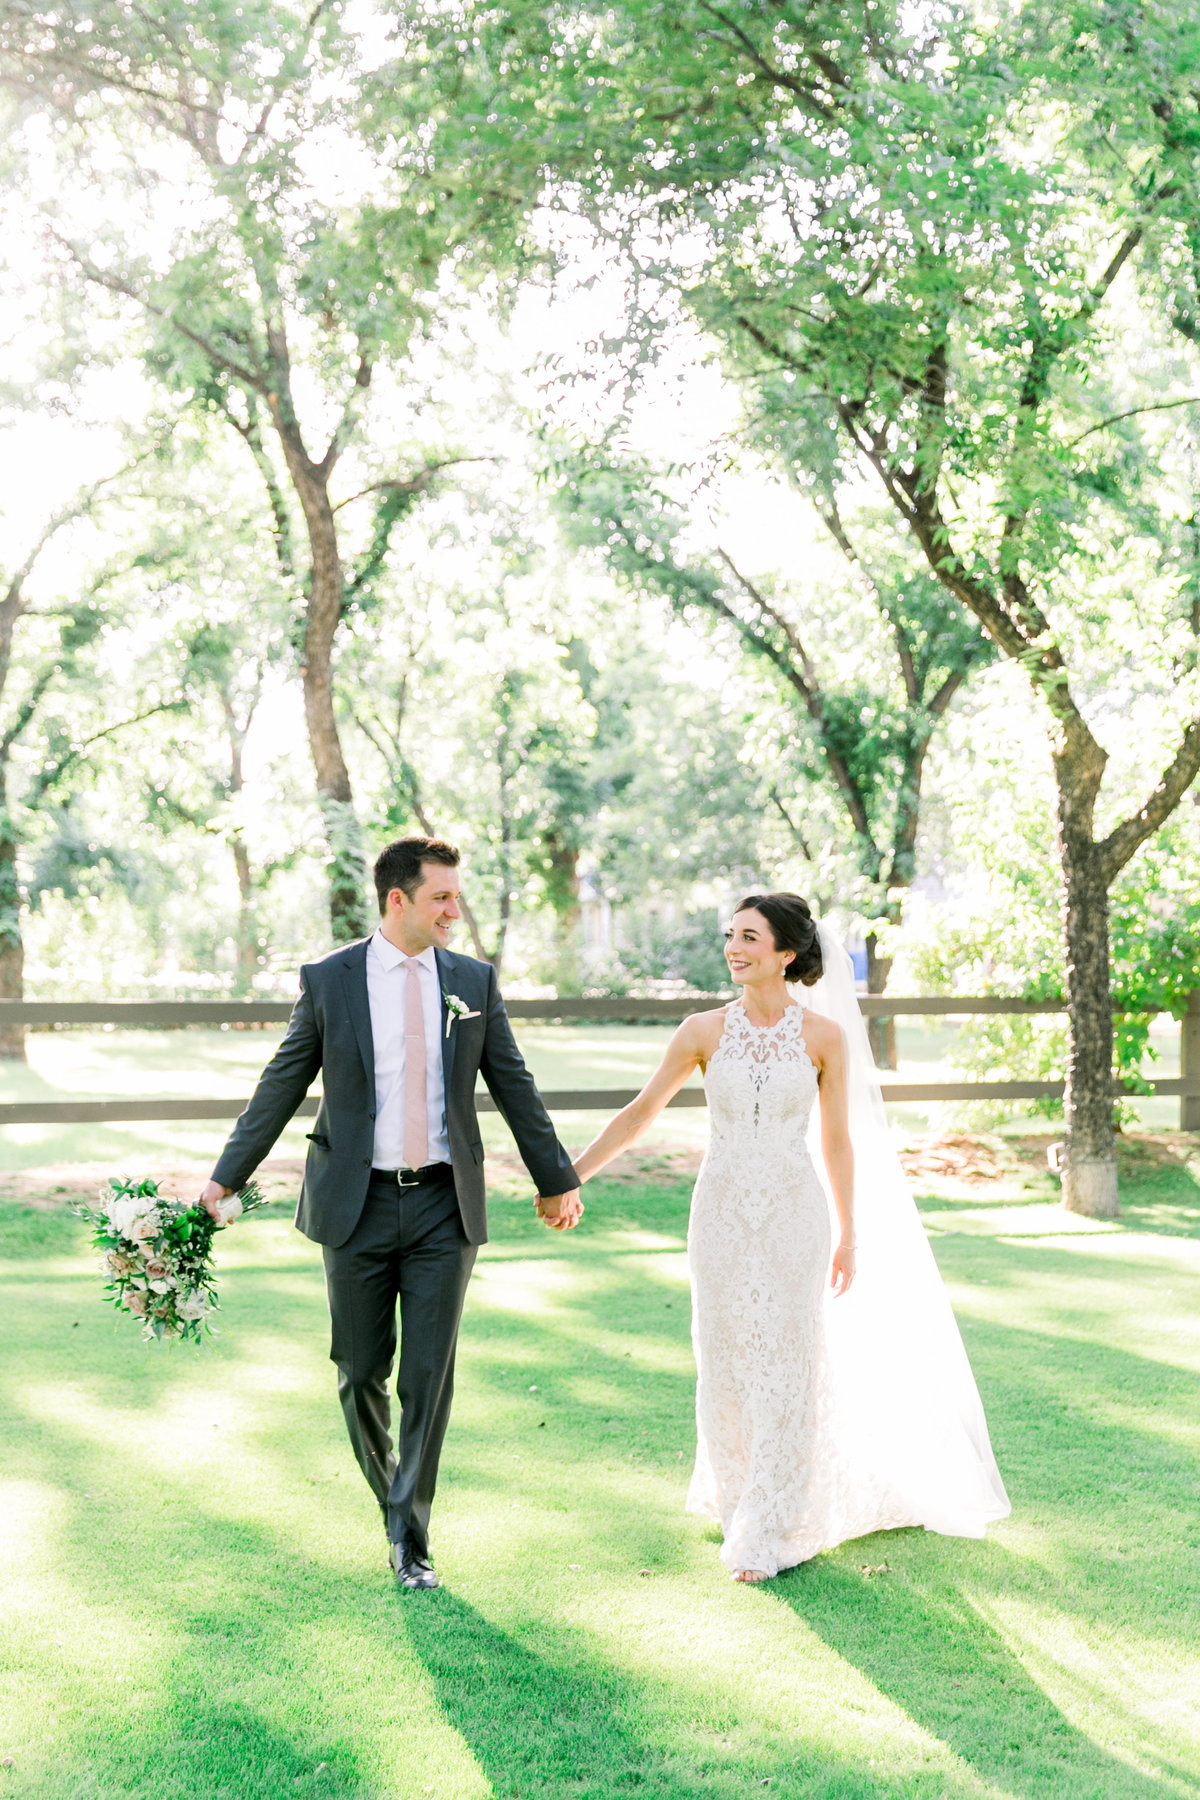 Karlie Colleen Photography - Venue At The Grove - Arizona Wedding - Maggie & Grant -62